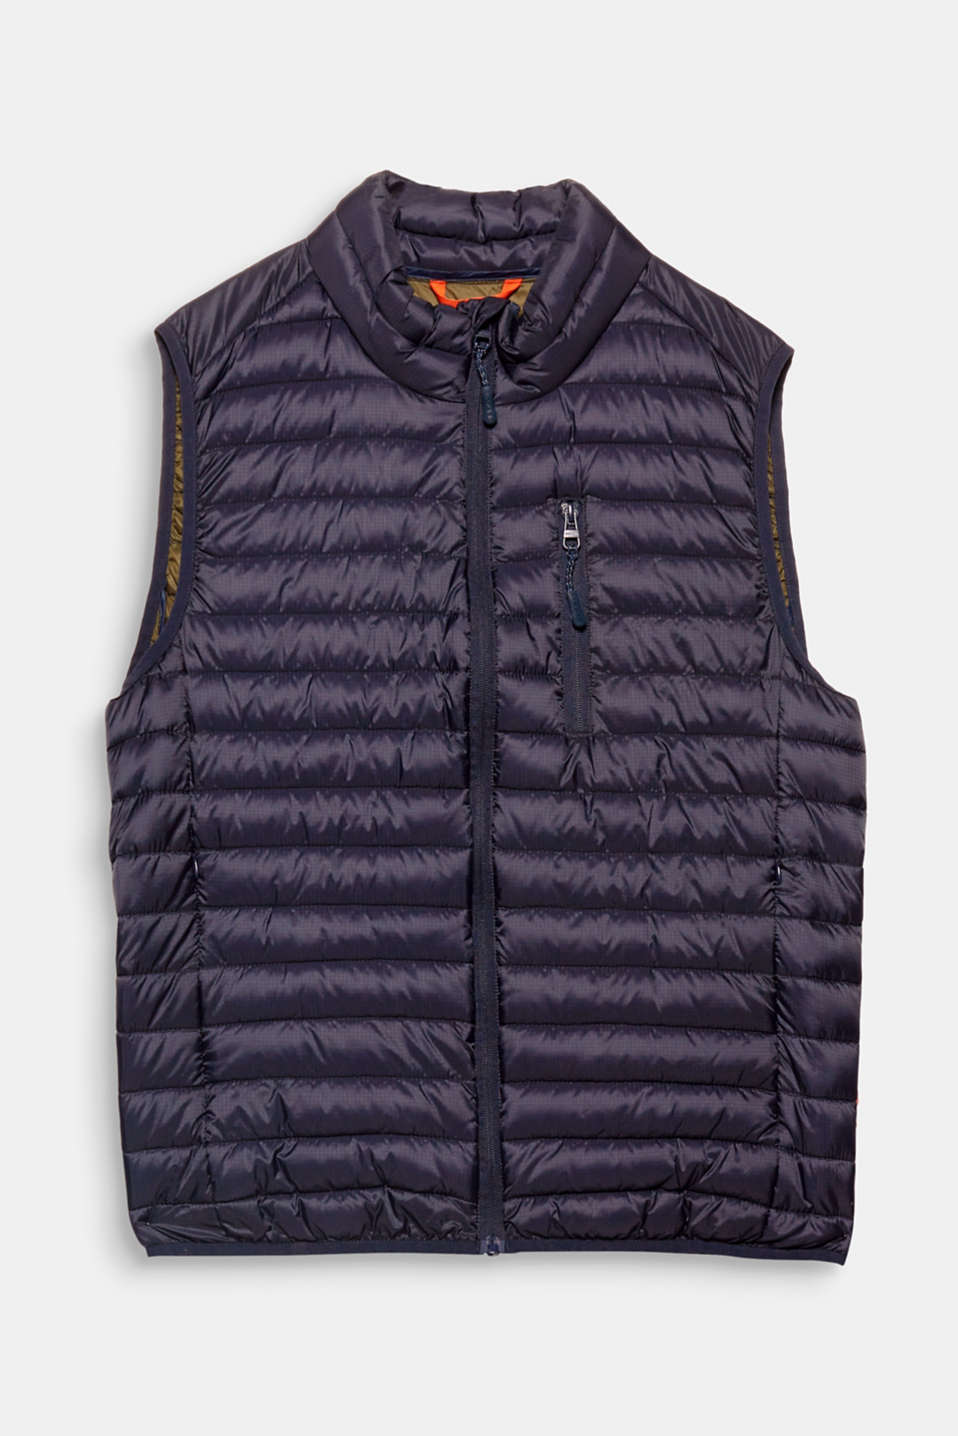 An outerwear classic: the quilted gilet The Thinsulate padding not only stores body heat, it is also wonderfully lightweight.